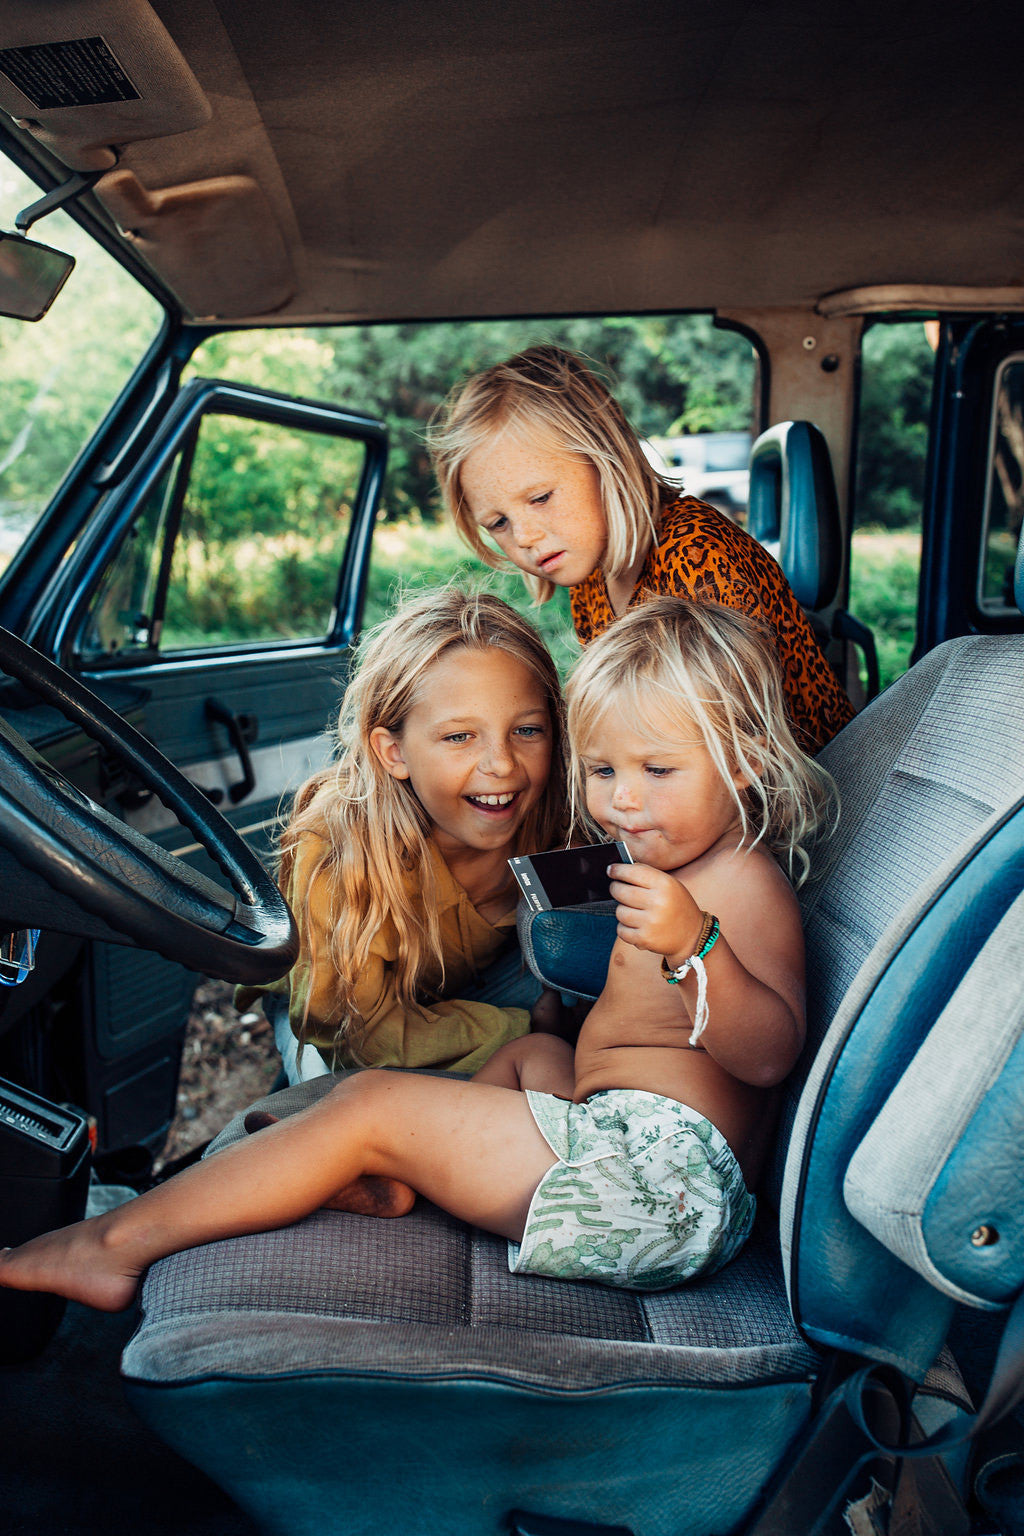 Travel with kids - don't be afraid